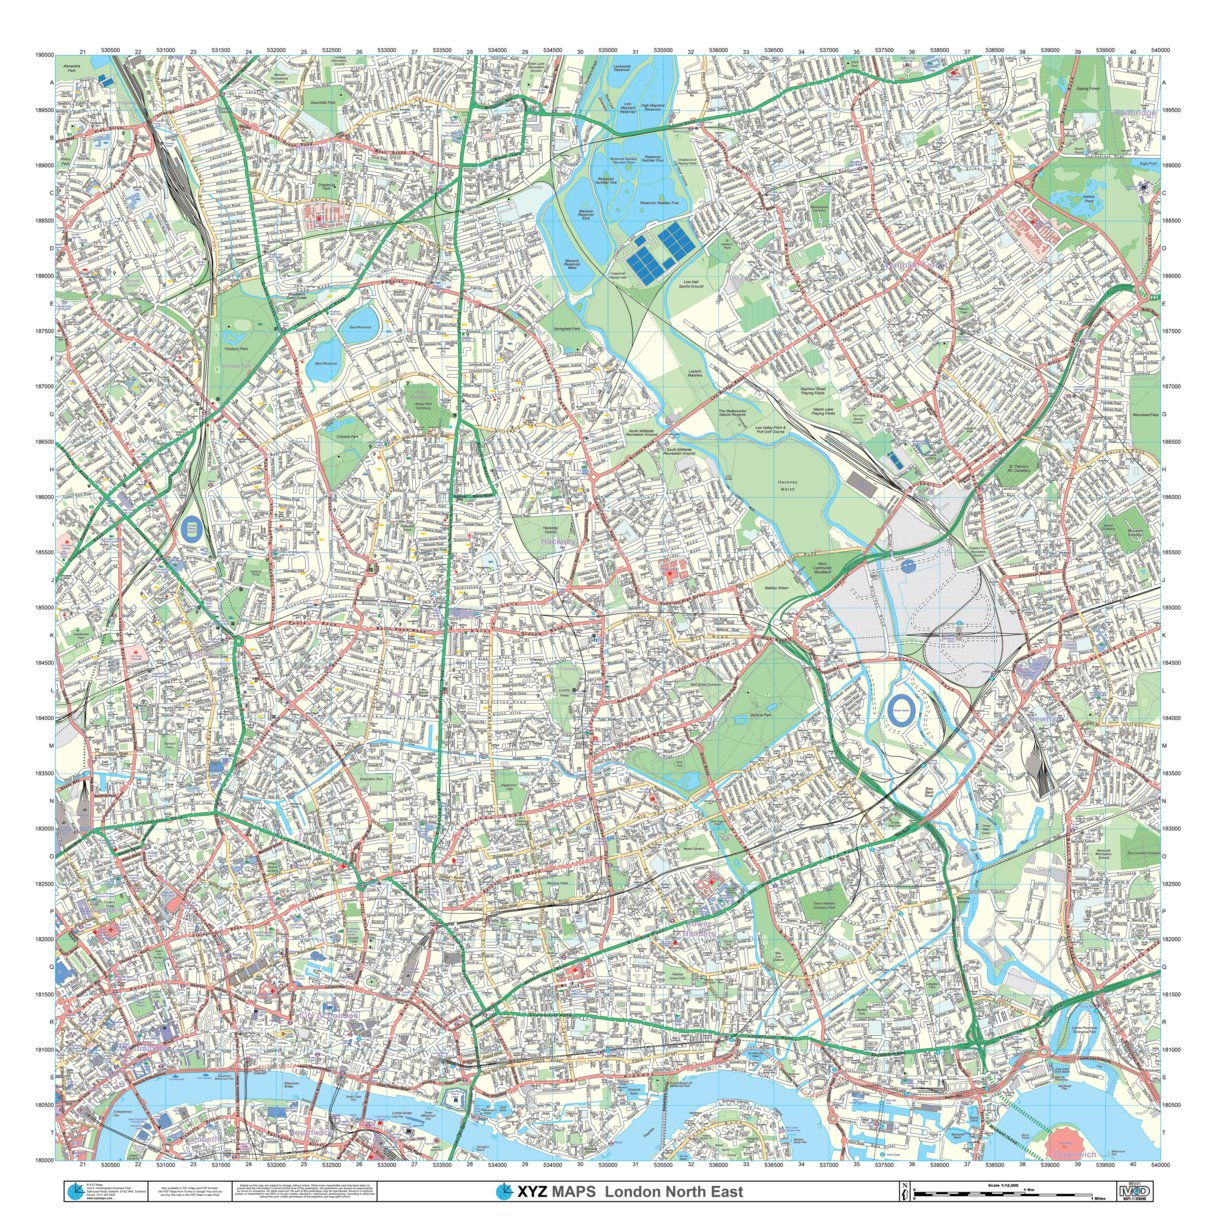 Map Of North East London.Xyz London North East Imap Xyz Maps Avenza Maps